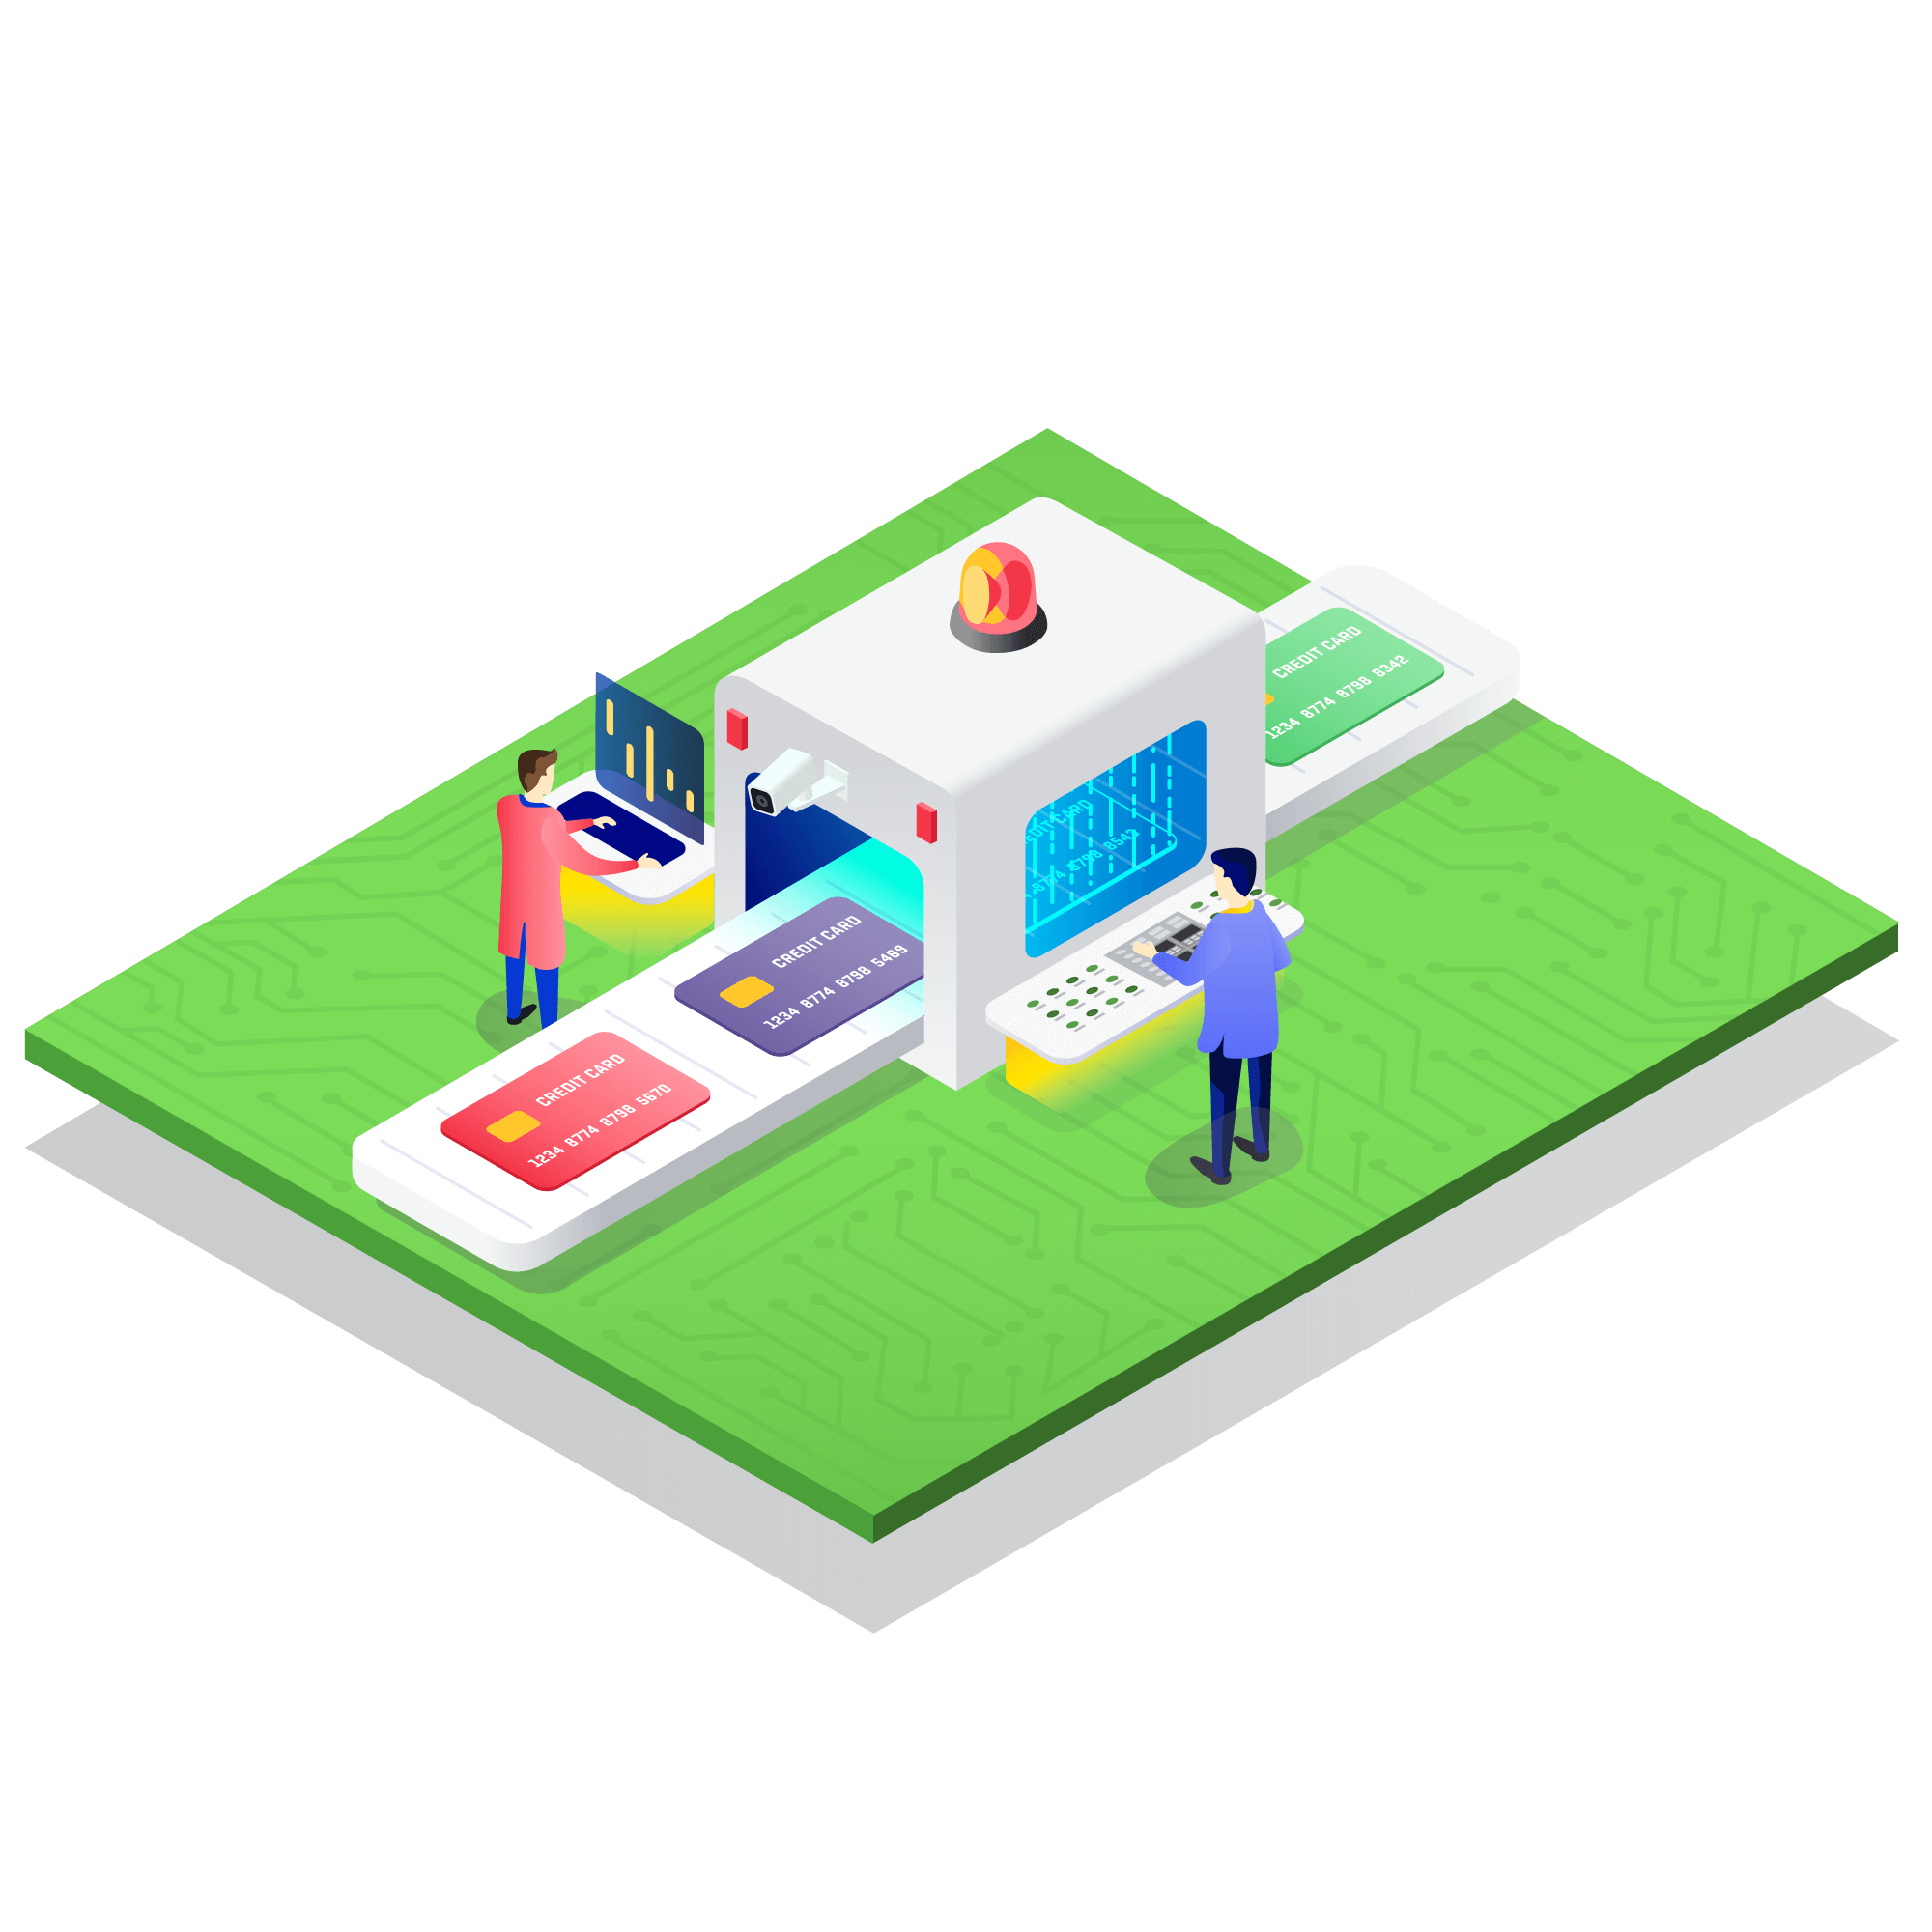 (Paycore)_Illustration_isometric_Manage-risk-effectively_04